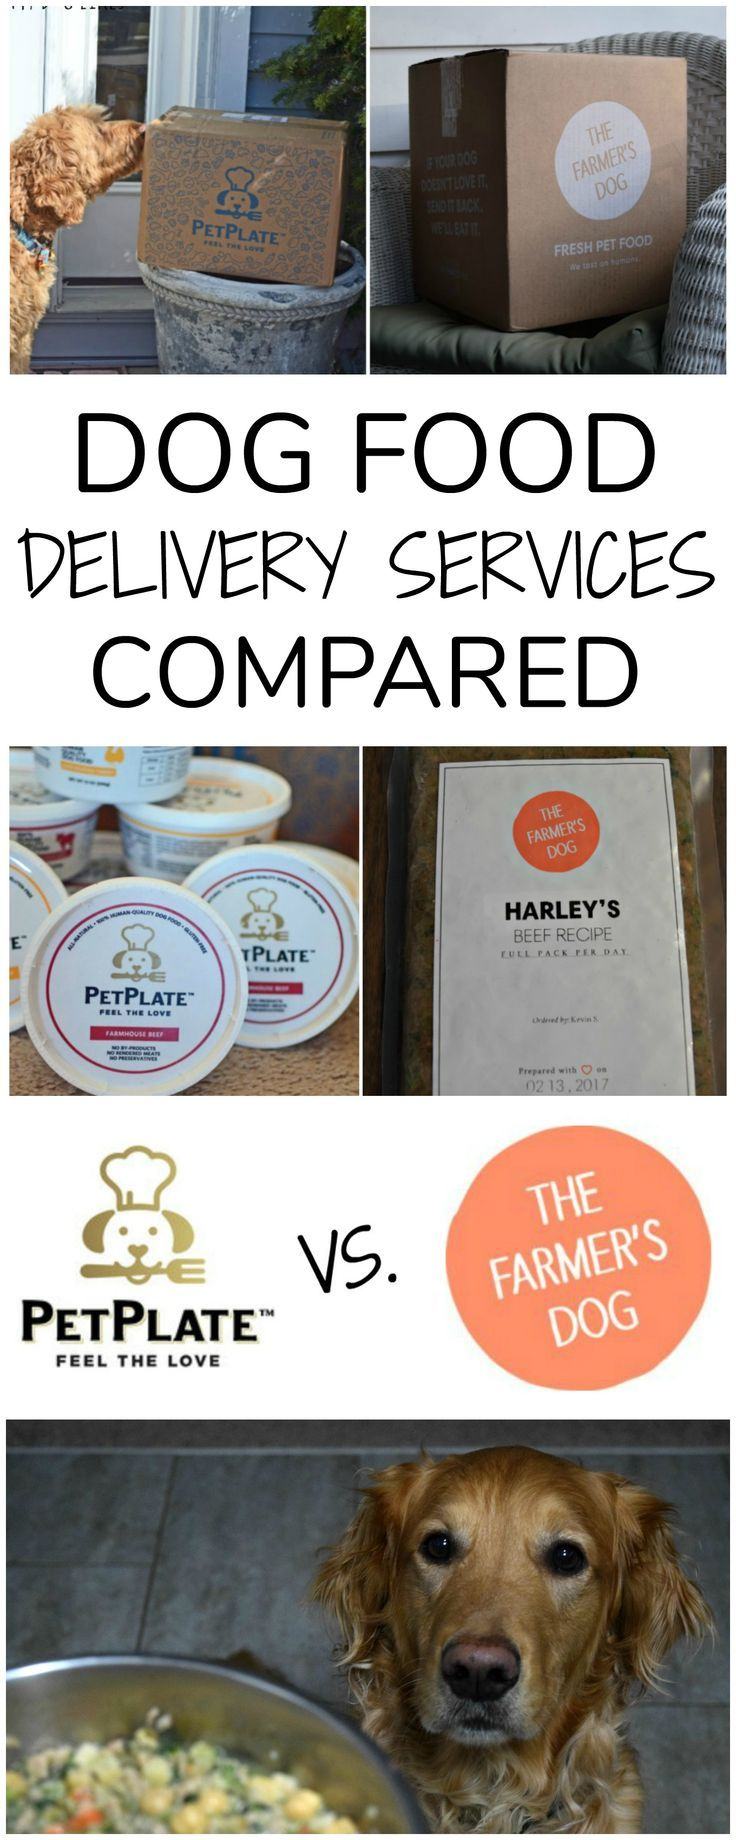 Petplate Vs The Farmer S Dog Homemade Dog Food Delivery Compared Dog Food Recipes Dog Food Delivery Dog Biscuit Recipes